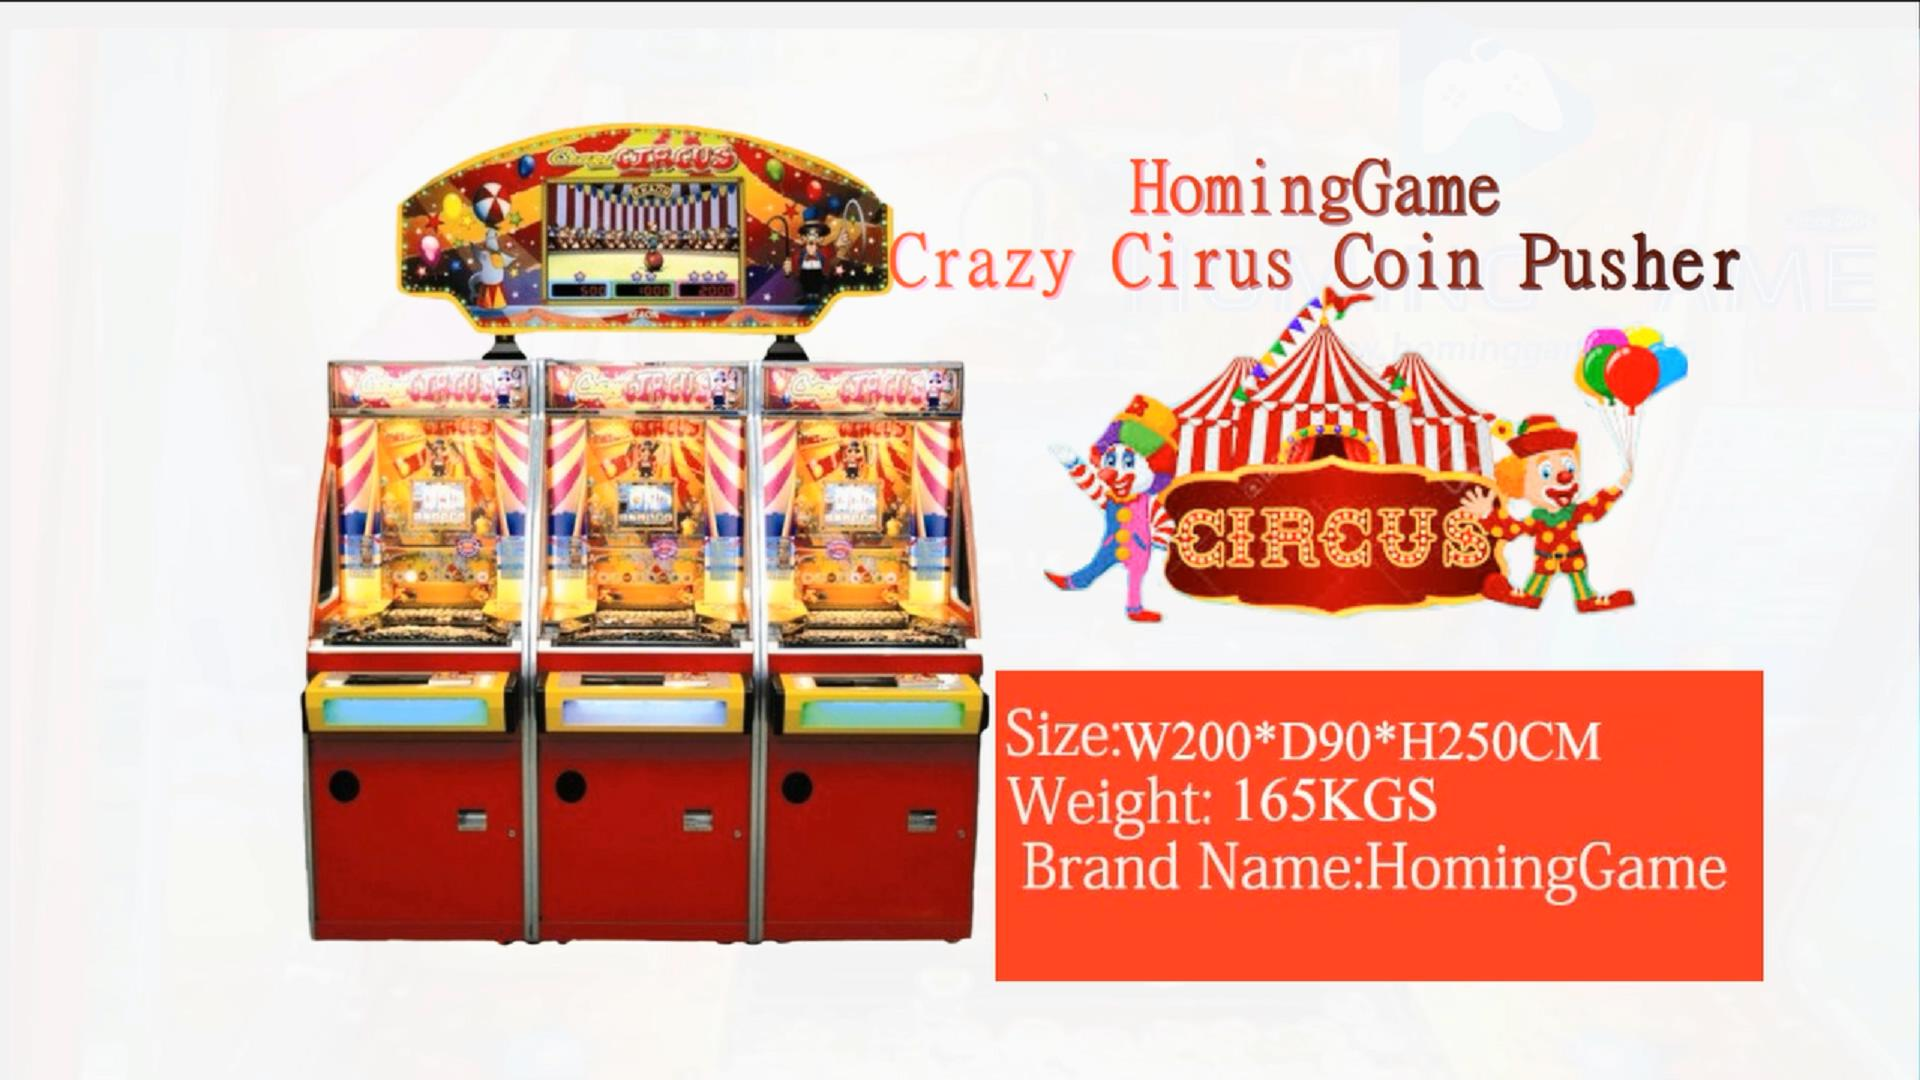 crazy circus coin pusher game machine,crazy circus,super crazy circus coin pusher game machine,coin pusher game machine,penny pusher game machine,token pusher game machine,push coin game machine,coin pusher arcade game machine,indoor game machine,game machine,arcade game machine,coin operated game machine,amusement park game equipment,electrical game machine,coin games,hominggame,hominggame coin pusher game machine,www.hominggame.com,gametube.hk,www.gametube.hk,gold fort coin pusher game machine,phara treasure con pusher game machine,flip 2 win coin pusher game machine,coin pusher redemption game machine,future world coin pusher game machine,entertainment game machine,slot game machine,gaming machine,casino gaming machine,gambling machine